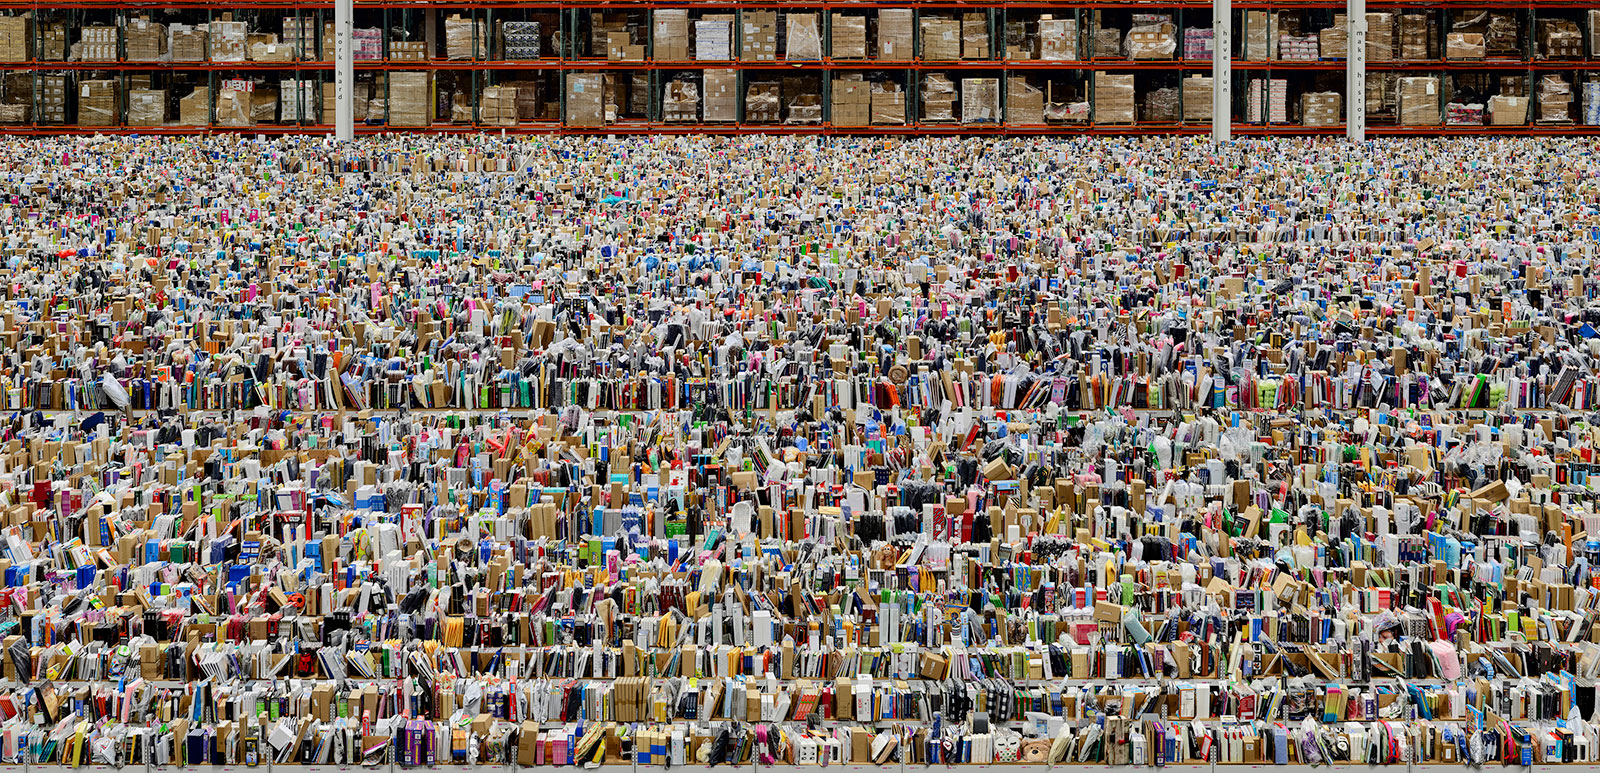 Andreas Gursky, 'Amazon'